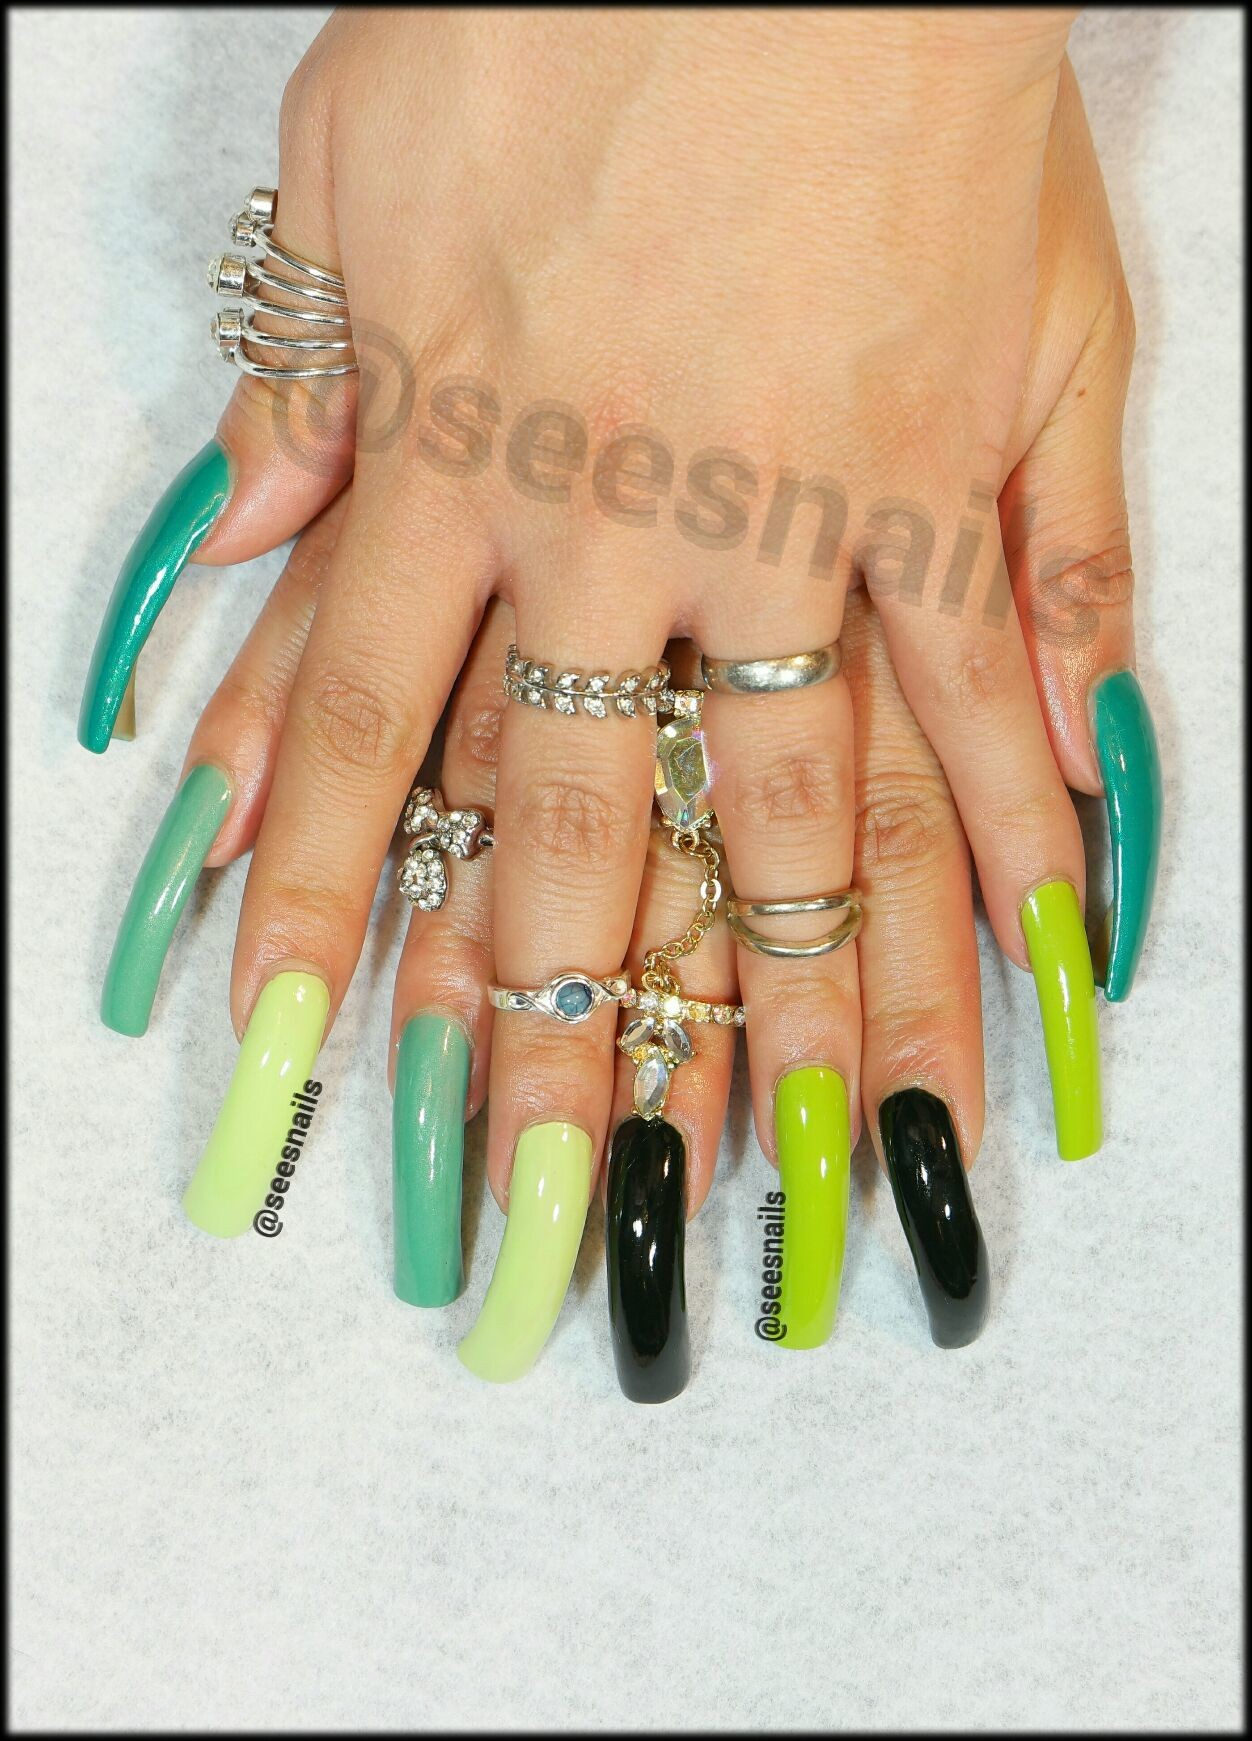 Green polishes